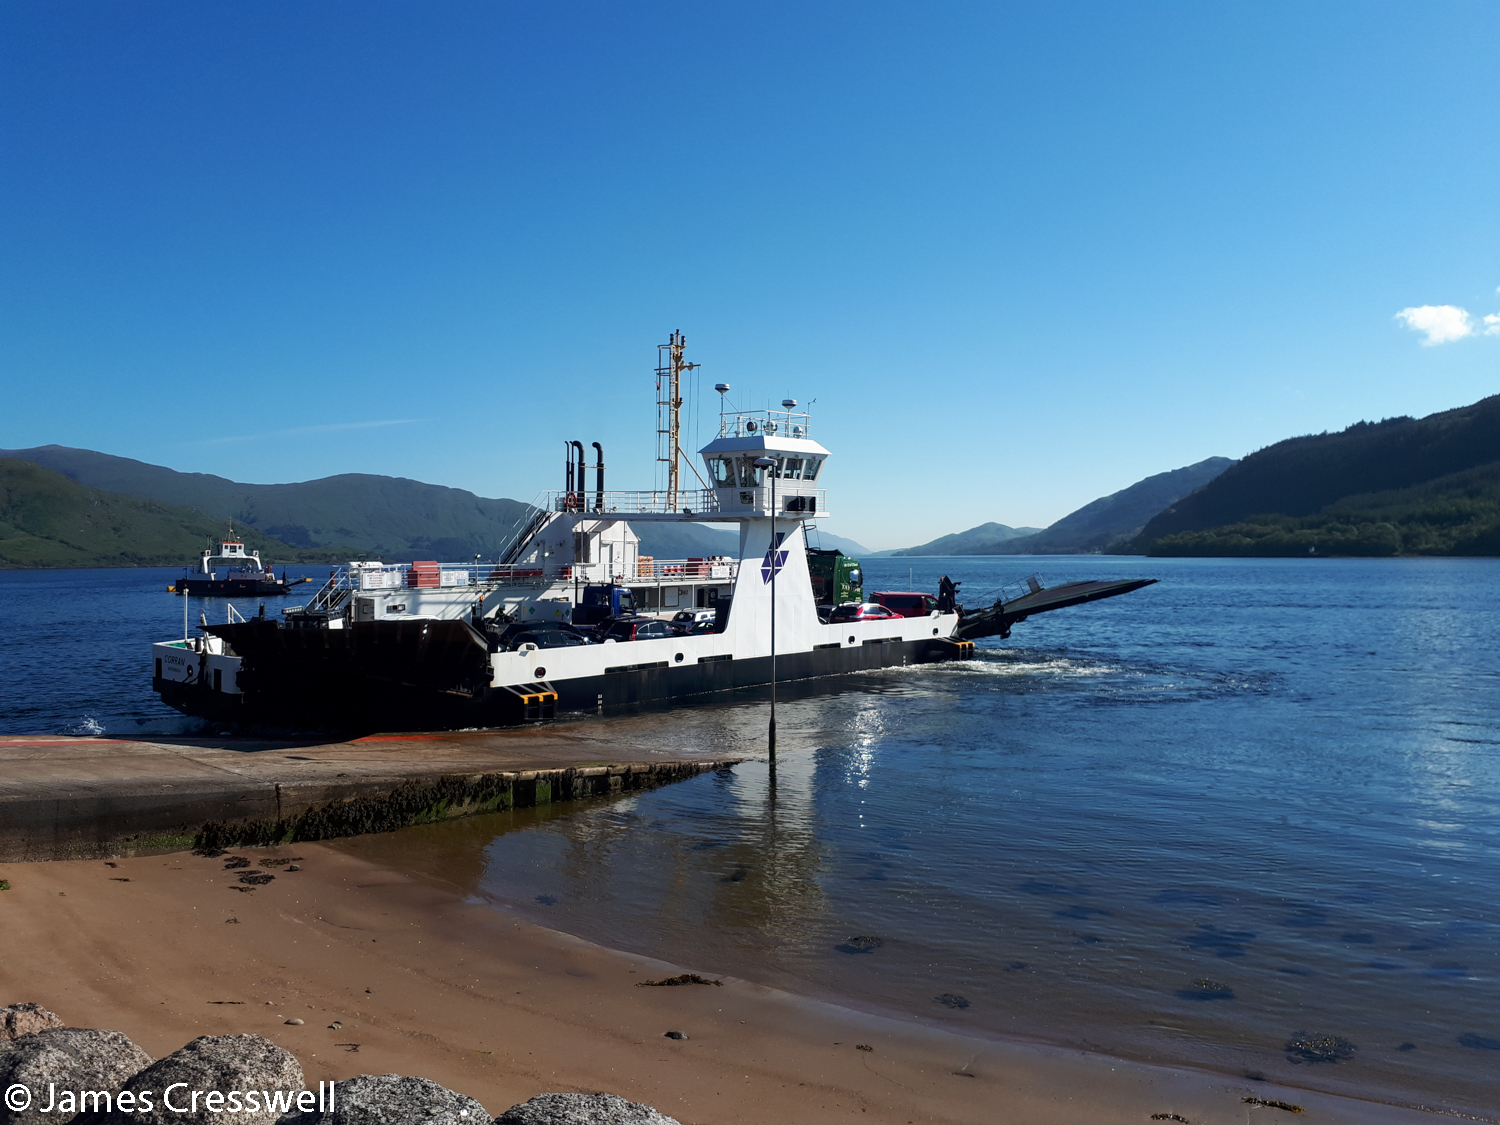 The Corran Narrows ferry crossing the Great Glen Fault in the Lochaber Geopark